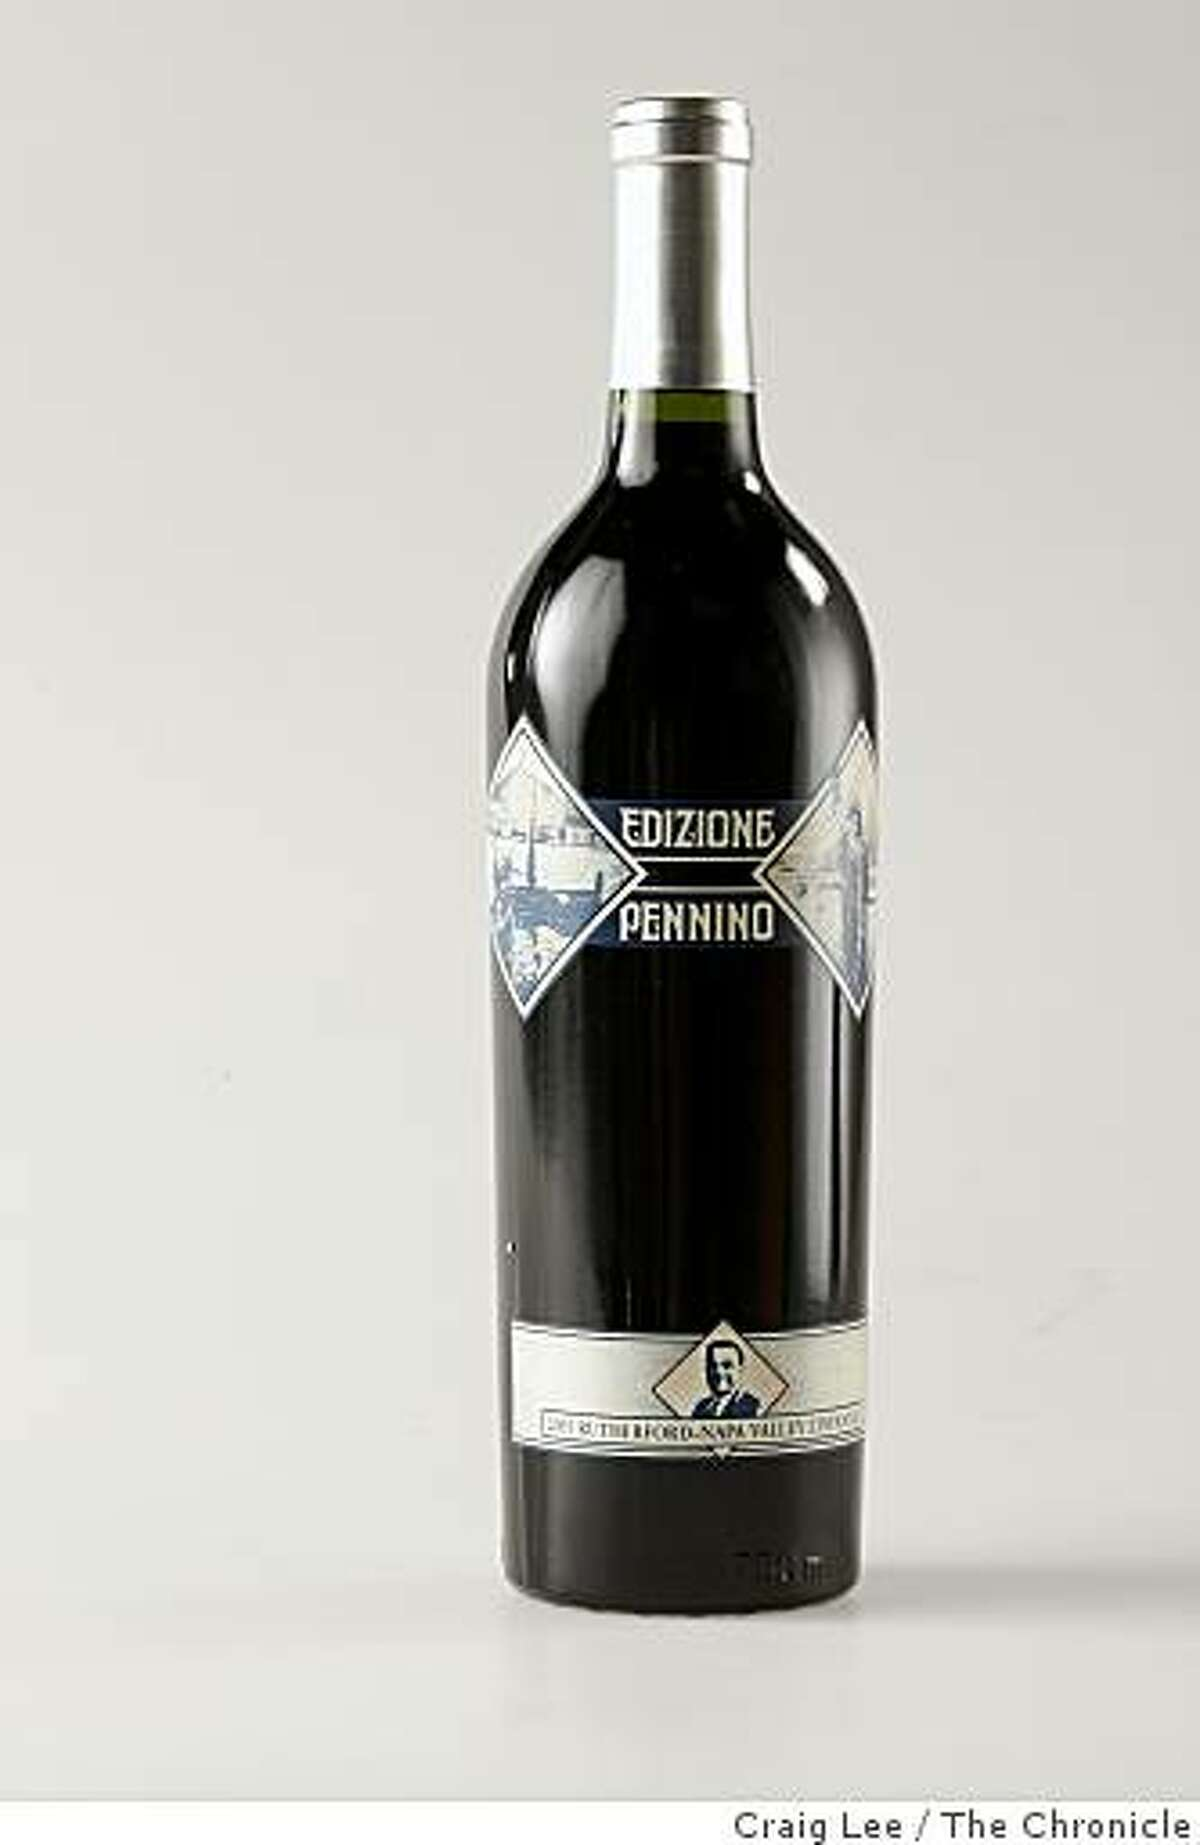 Edizione Pennino wine, one of the Top Ten wines out of the Top 100, in San Francisco, Calif., on November 13, 2008.